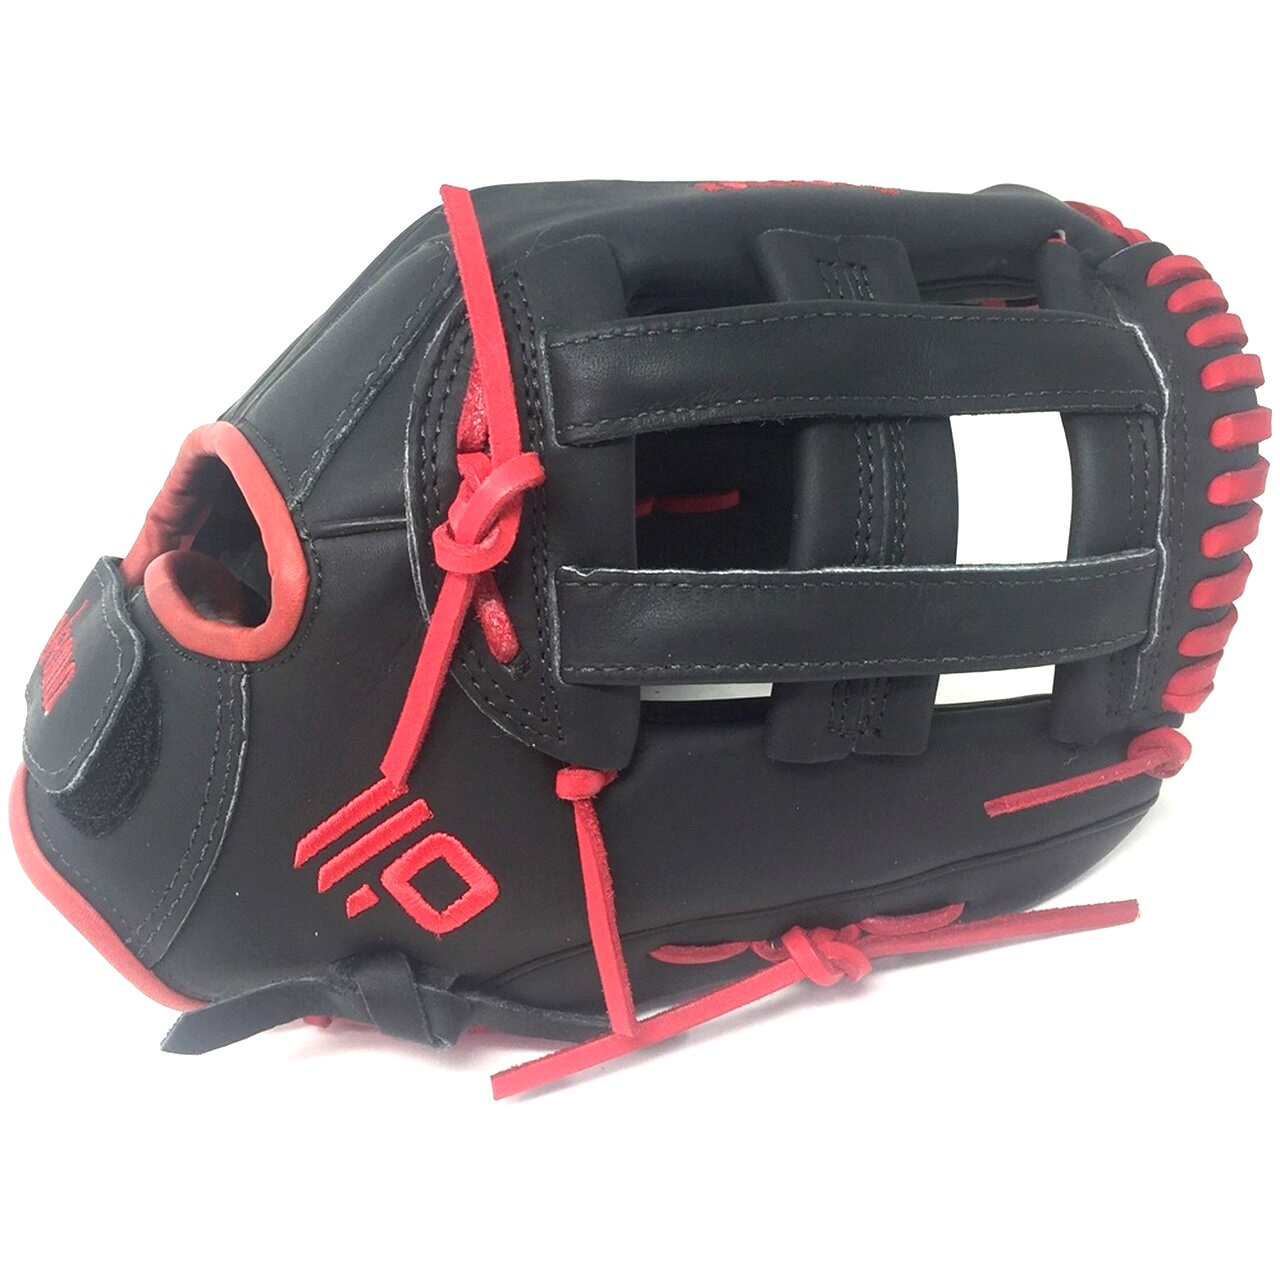 nokona-american-kip-fast-pitch-softball-glove-12-5-right-hand-throw A-1250H-BKRD-RightHandThrow Nokona 808808899501 12.5 Inch Pattern AmericanKIP - American Steerhide With Characteristics Similar To